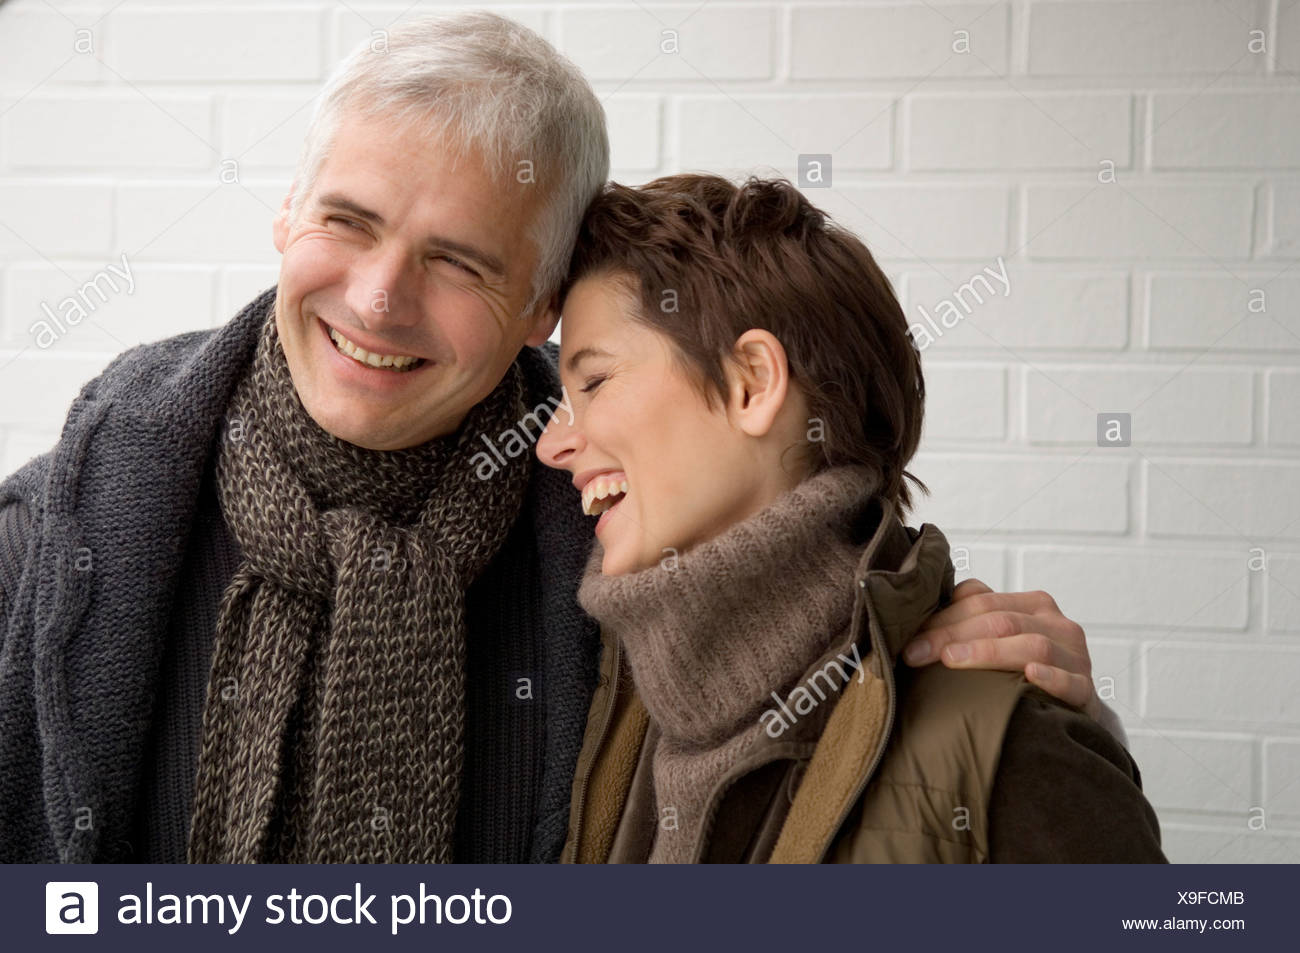 Close-up of a mature man arm around a mid adult woman and smiling - Stock Image